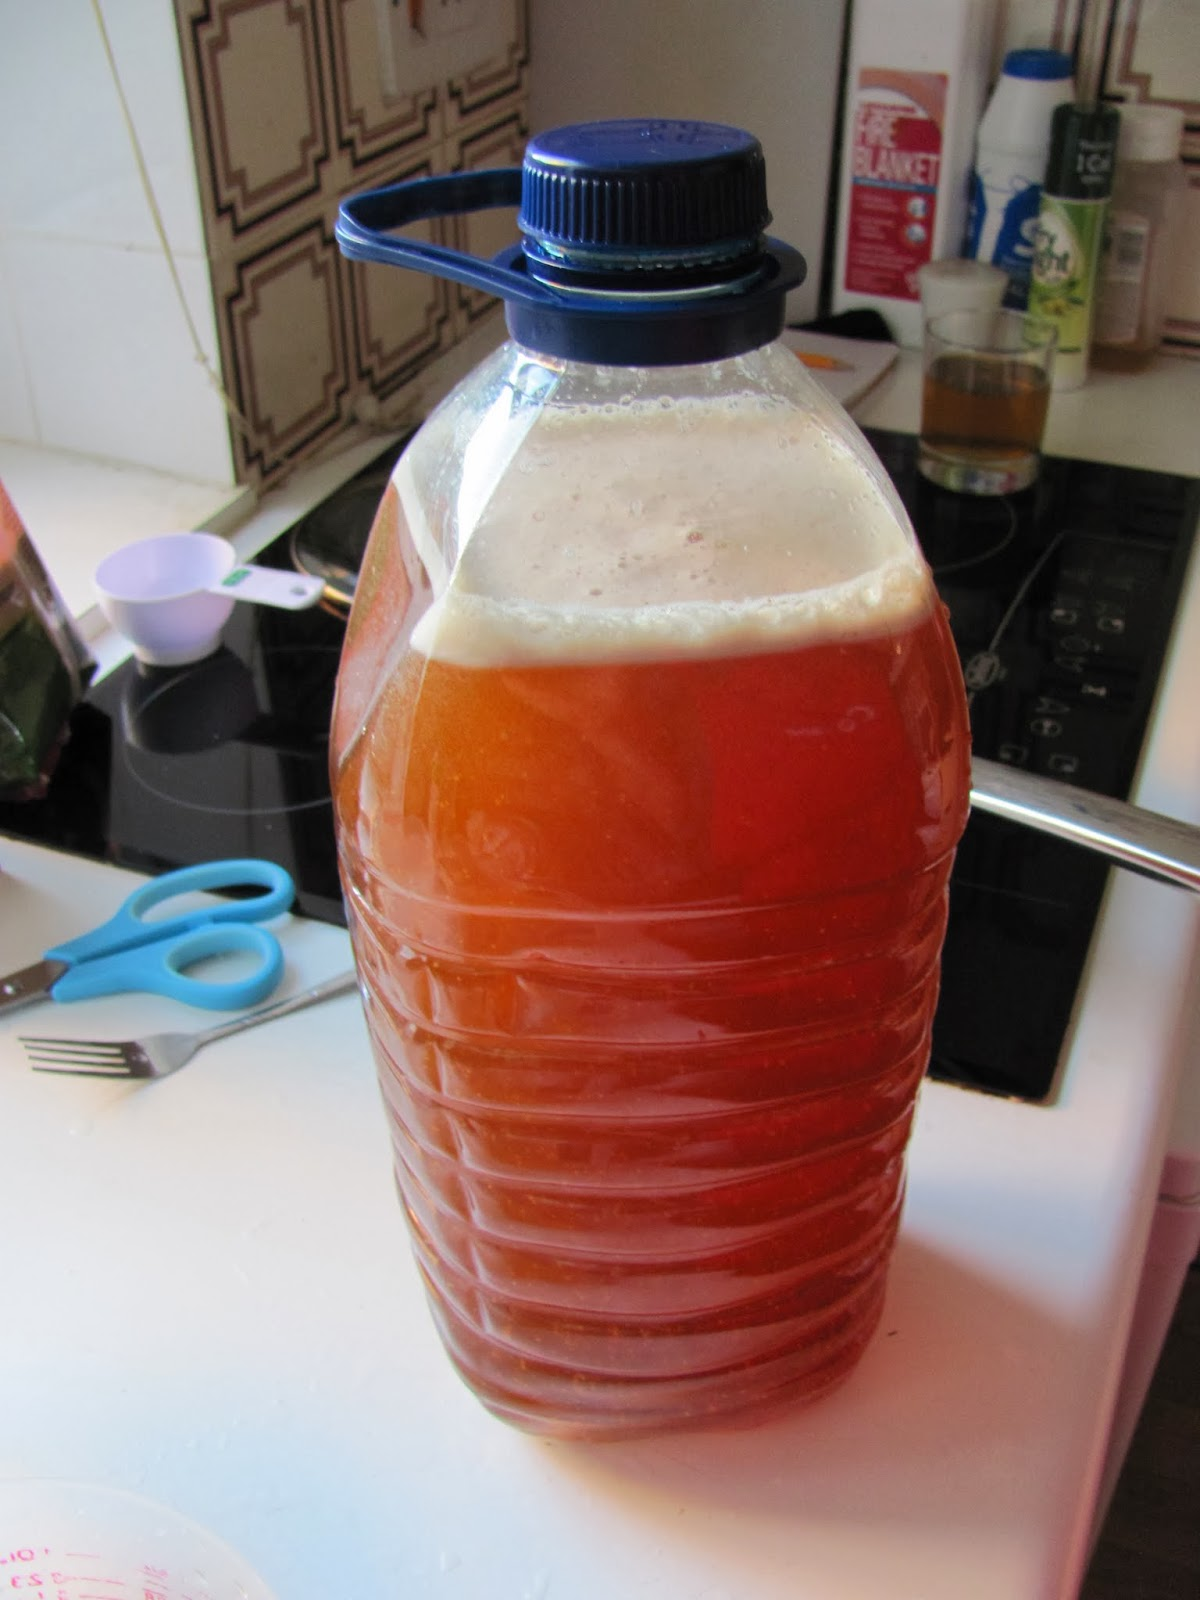 Cider is ready to ferment